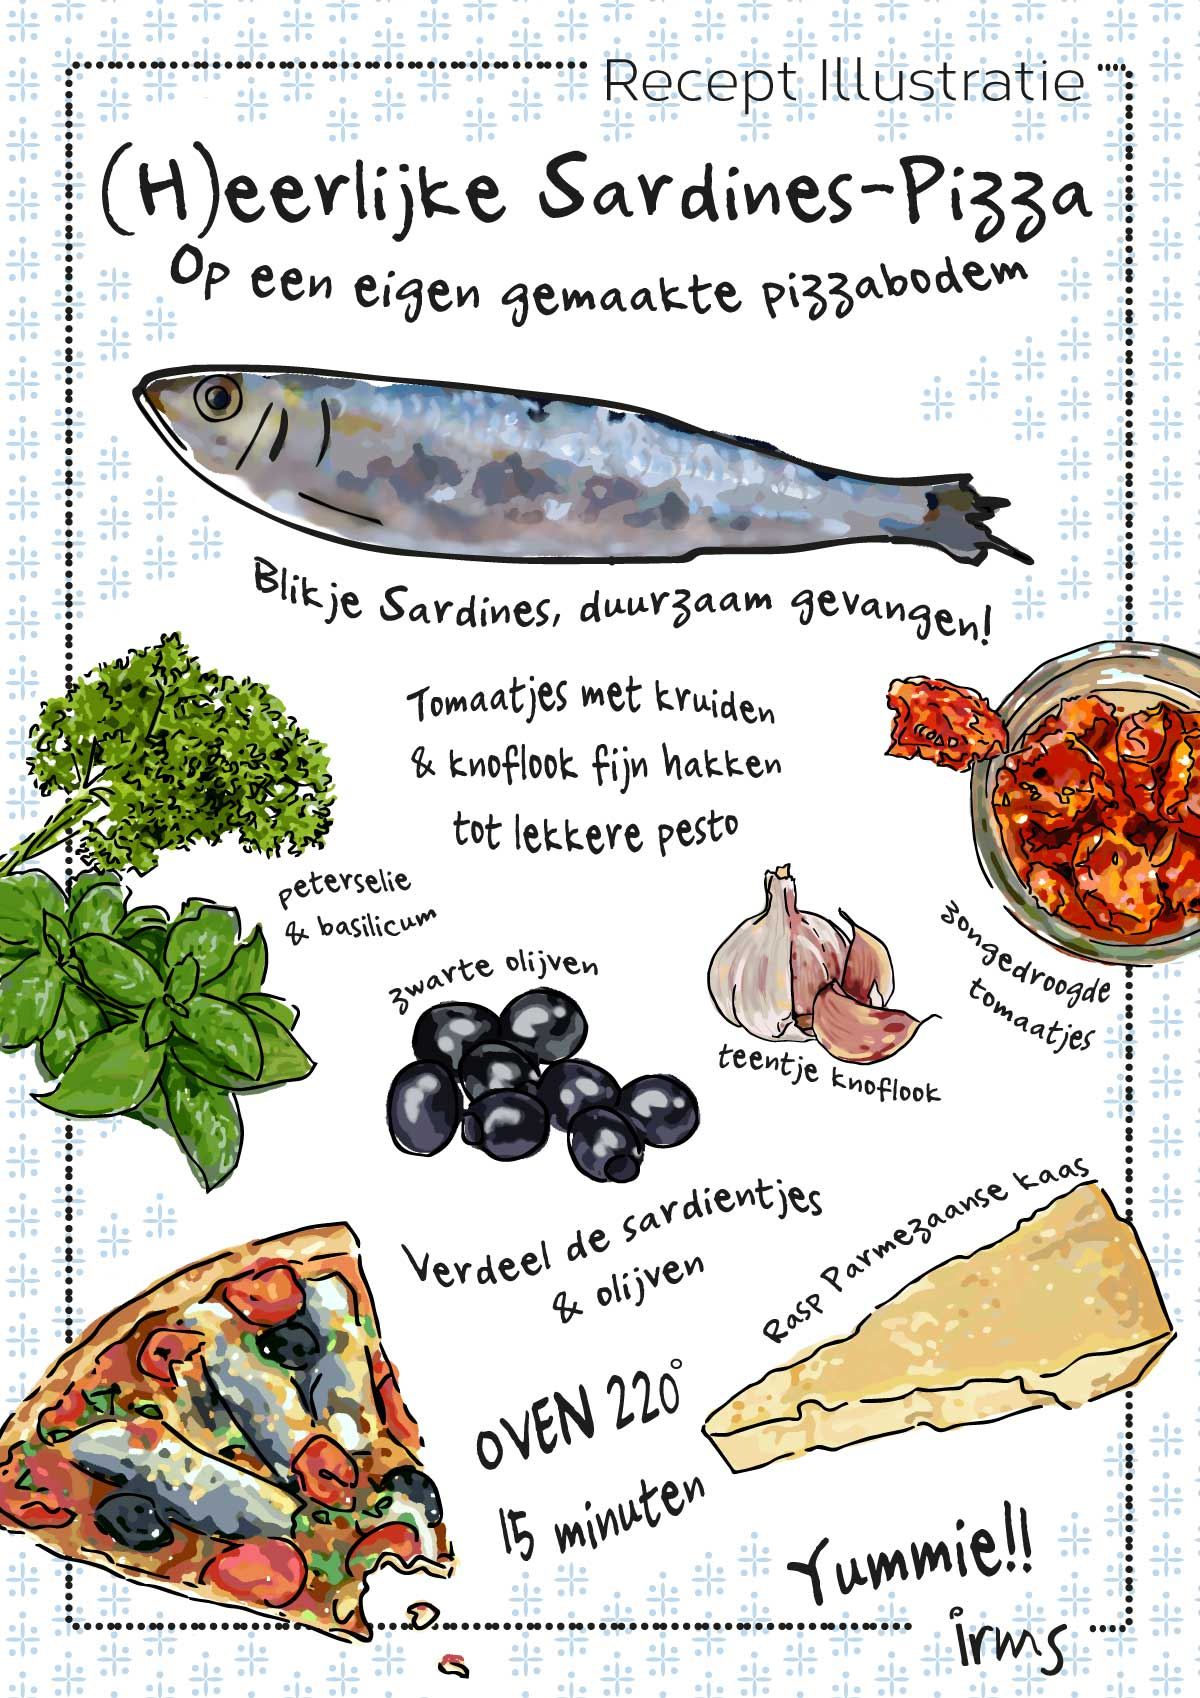 sardines-recept-illustratie-irms